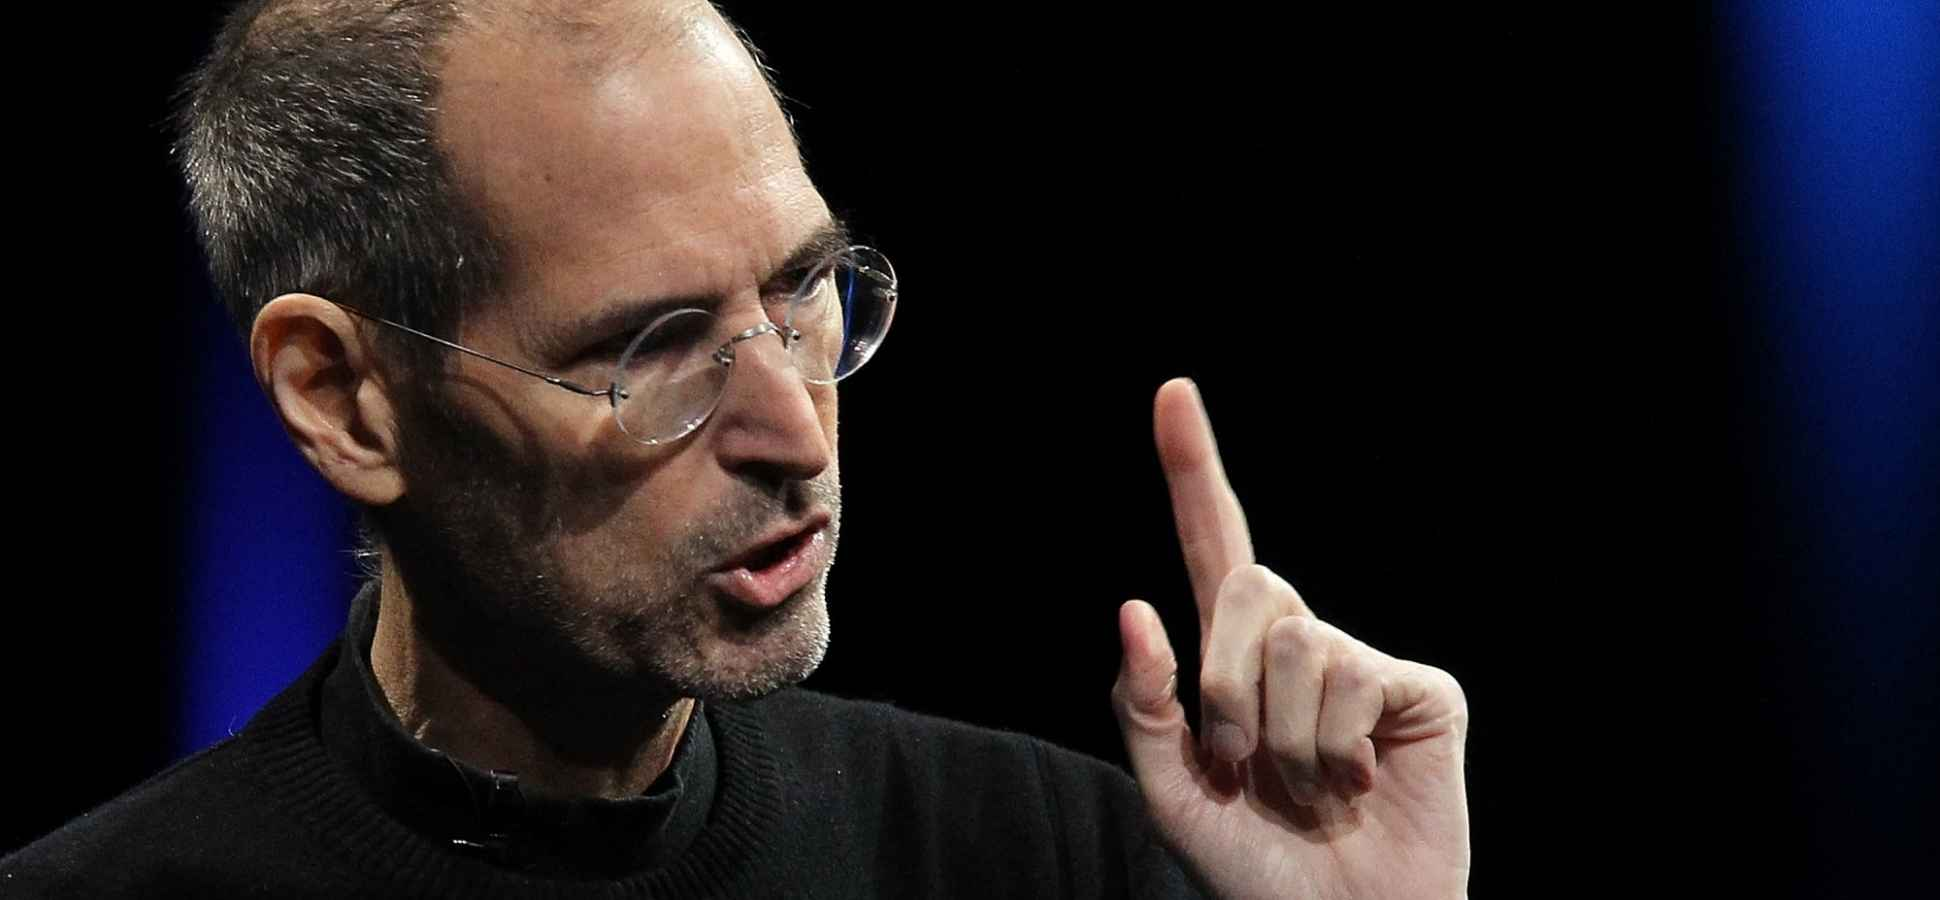 5 Ways Visionaries Like Steve Jobs Got That Way